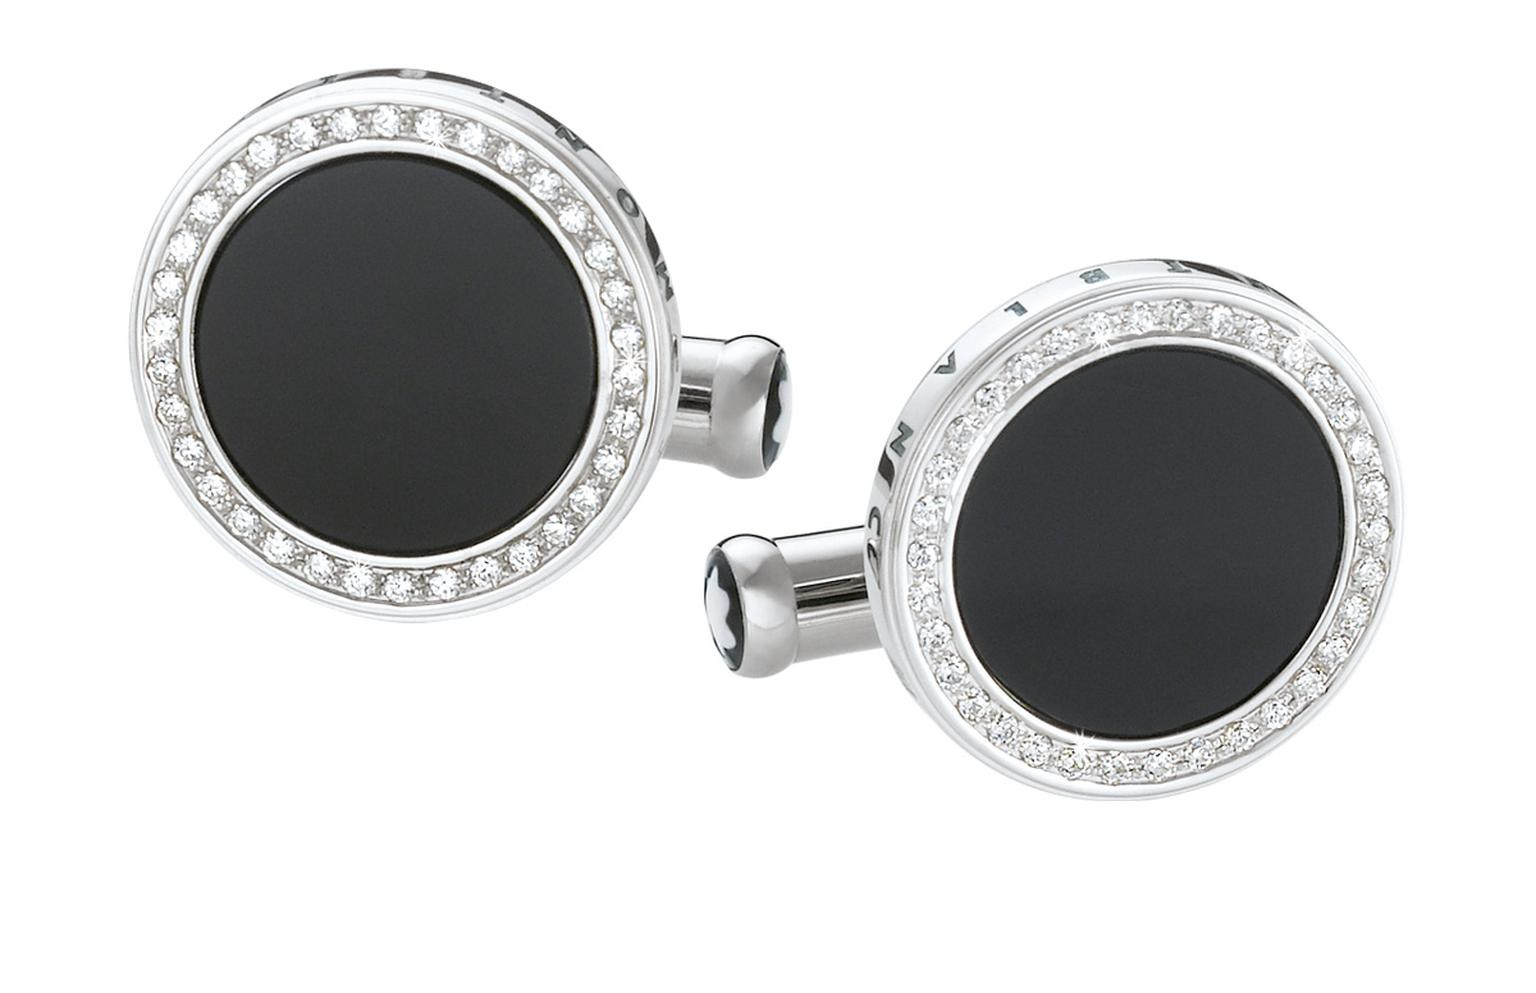 Montblanc white gold and diamond cufflinks_20130613_Zoom